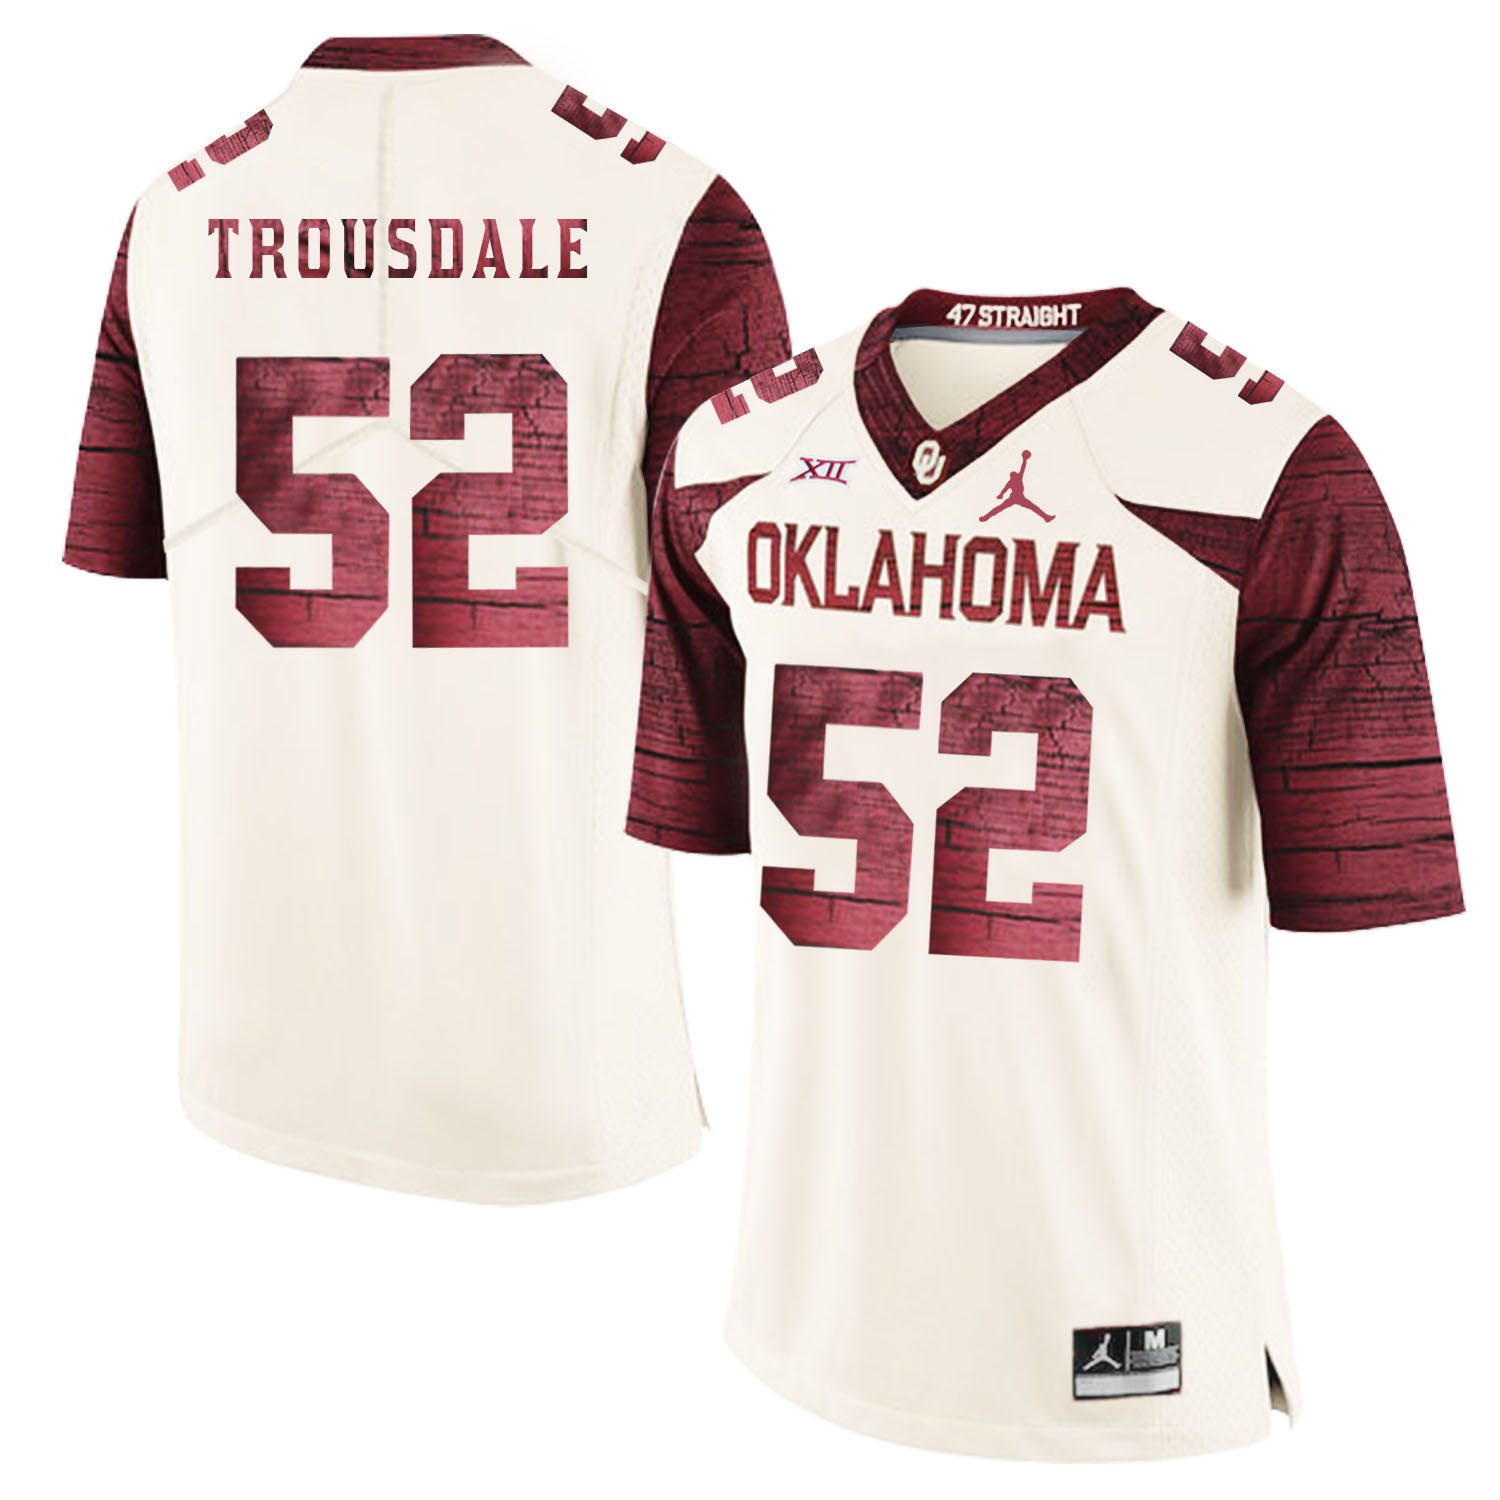 Oklahoma Sooners 52 Beau Trousdale White 47 Game Winning Streak College Football Jersey